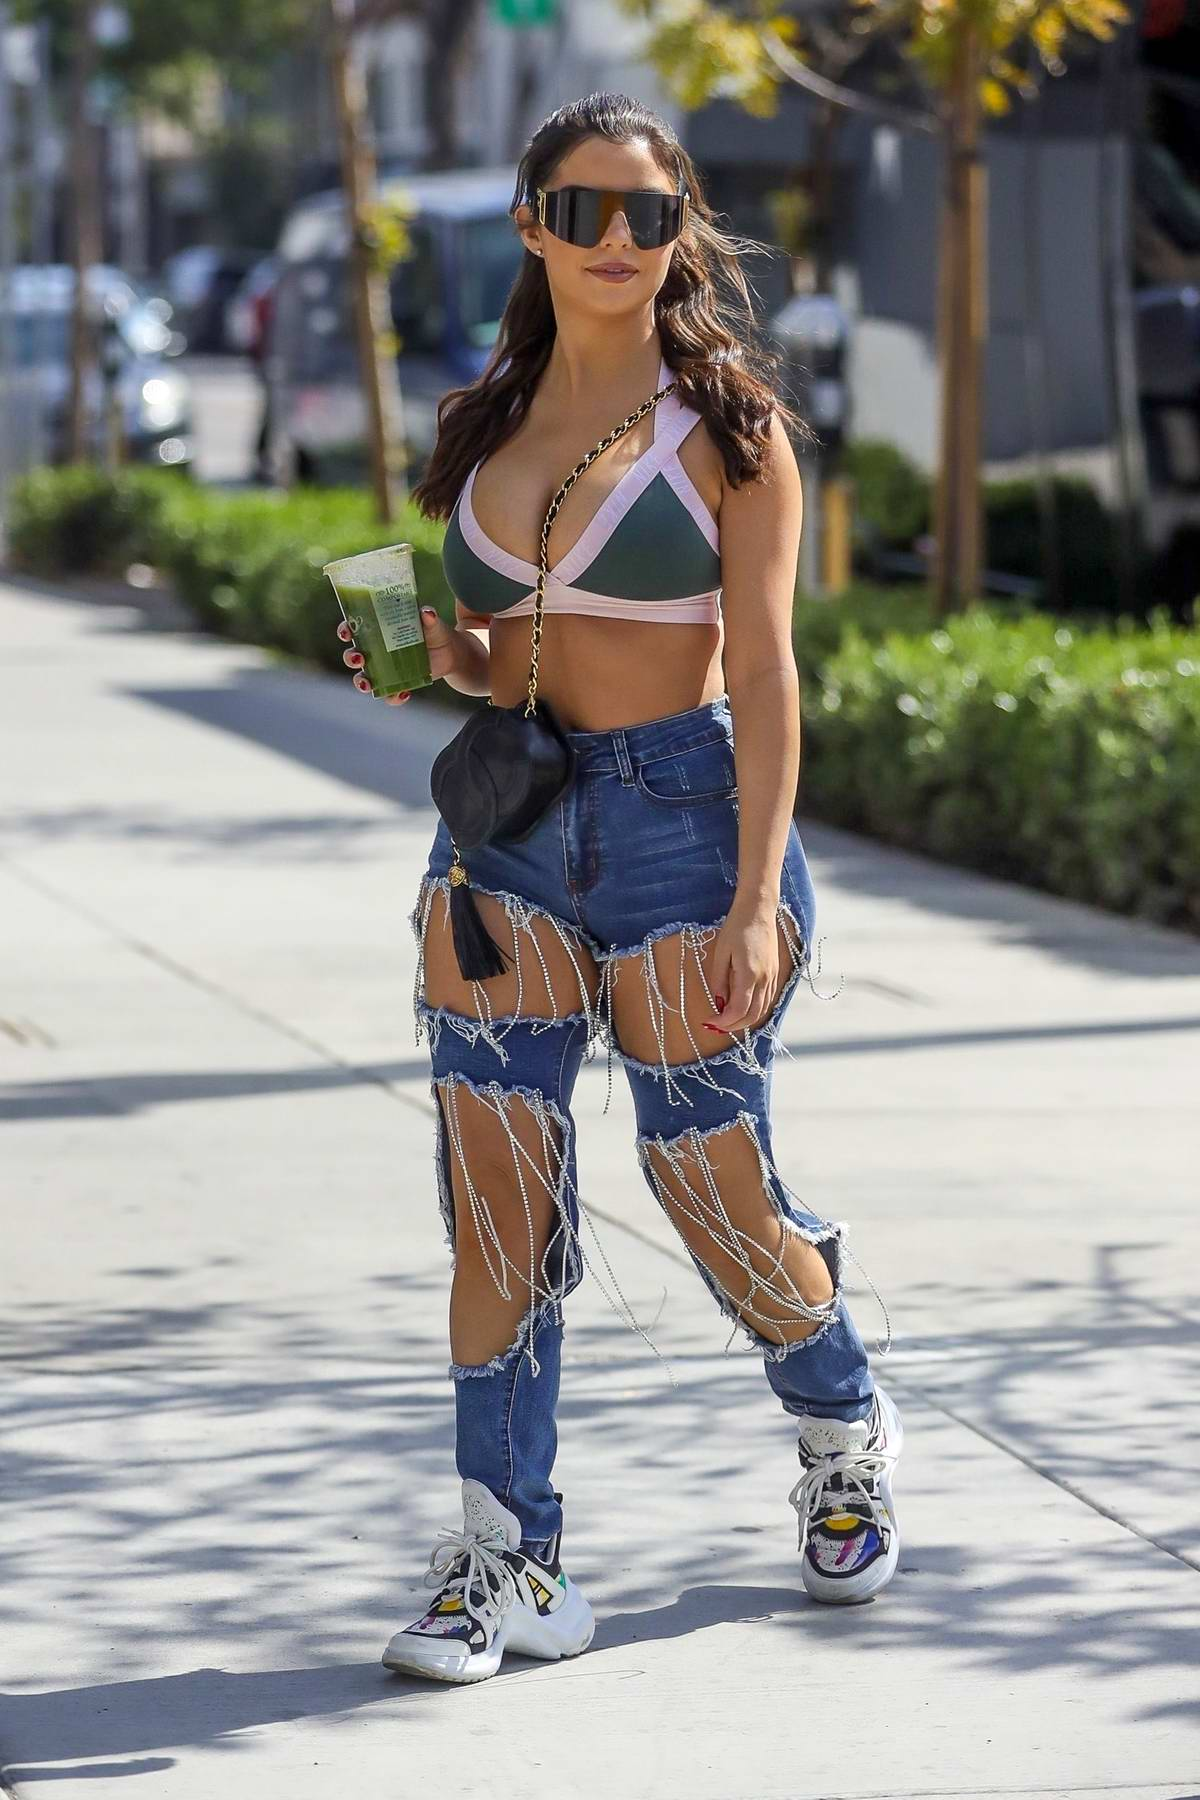 Demi Rose flaunts her curves while out shopping with a friend on Melrose Place in Los Angeles